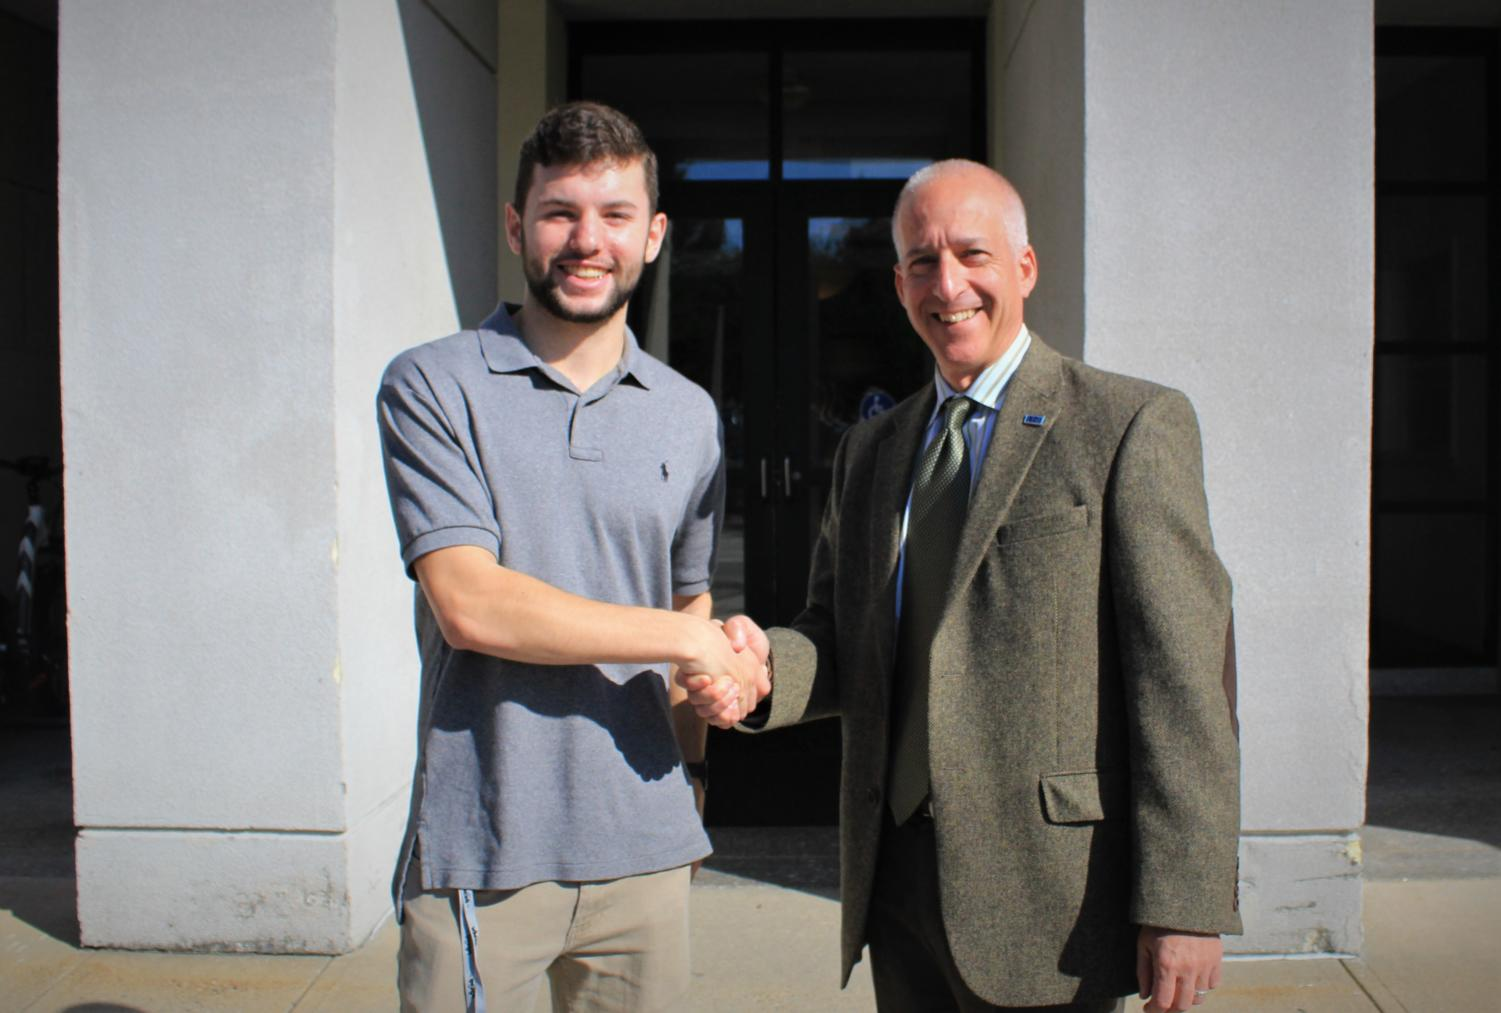 Editor-In-Chief Jack Allsopp (Left) shaking hands with Dean Jonathan Millen (right)